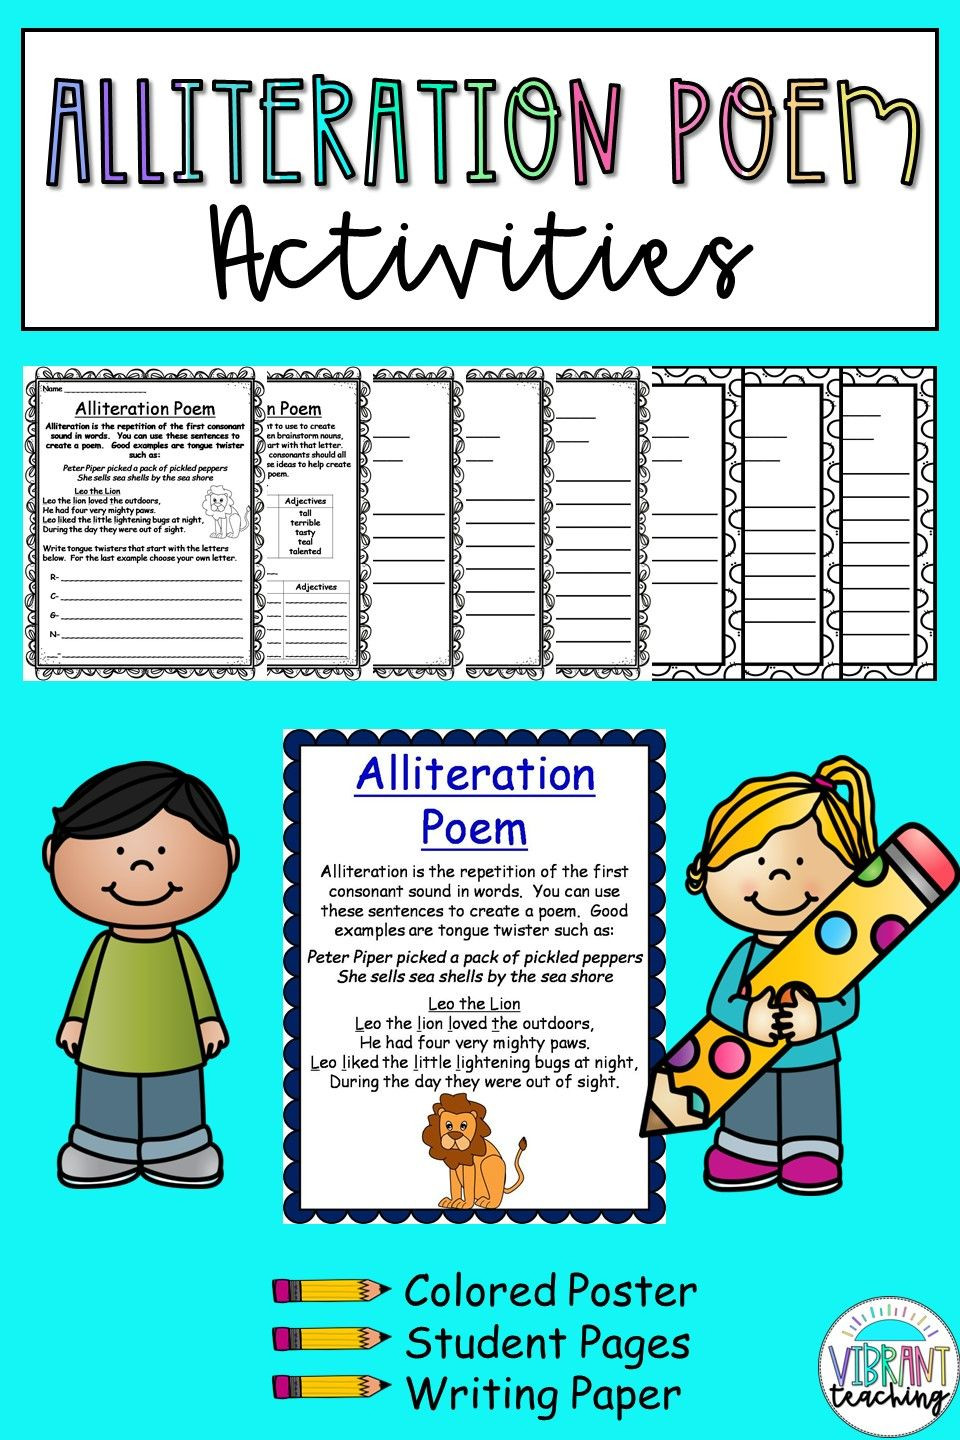 Alliteration Worksheets for Middle School Alliteration Poem Activities In 2020